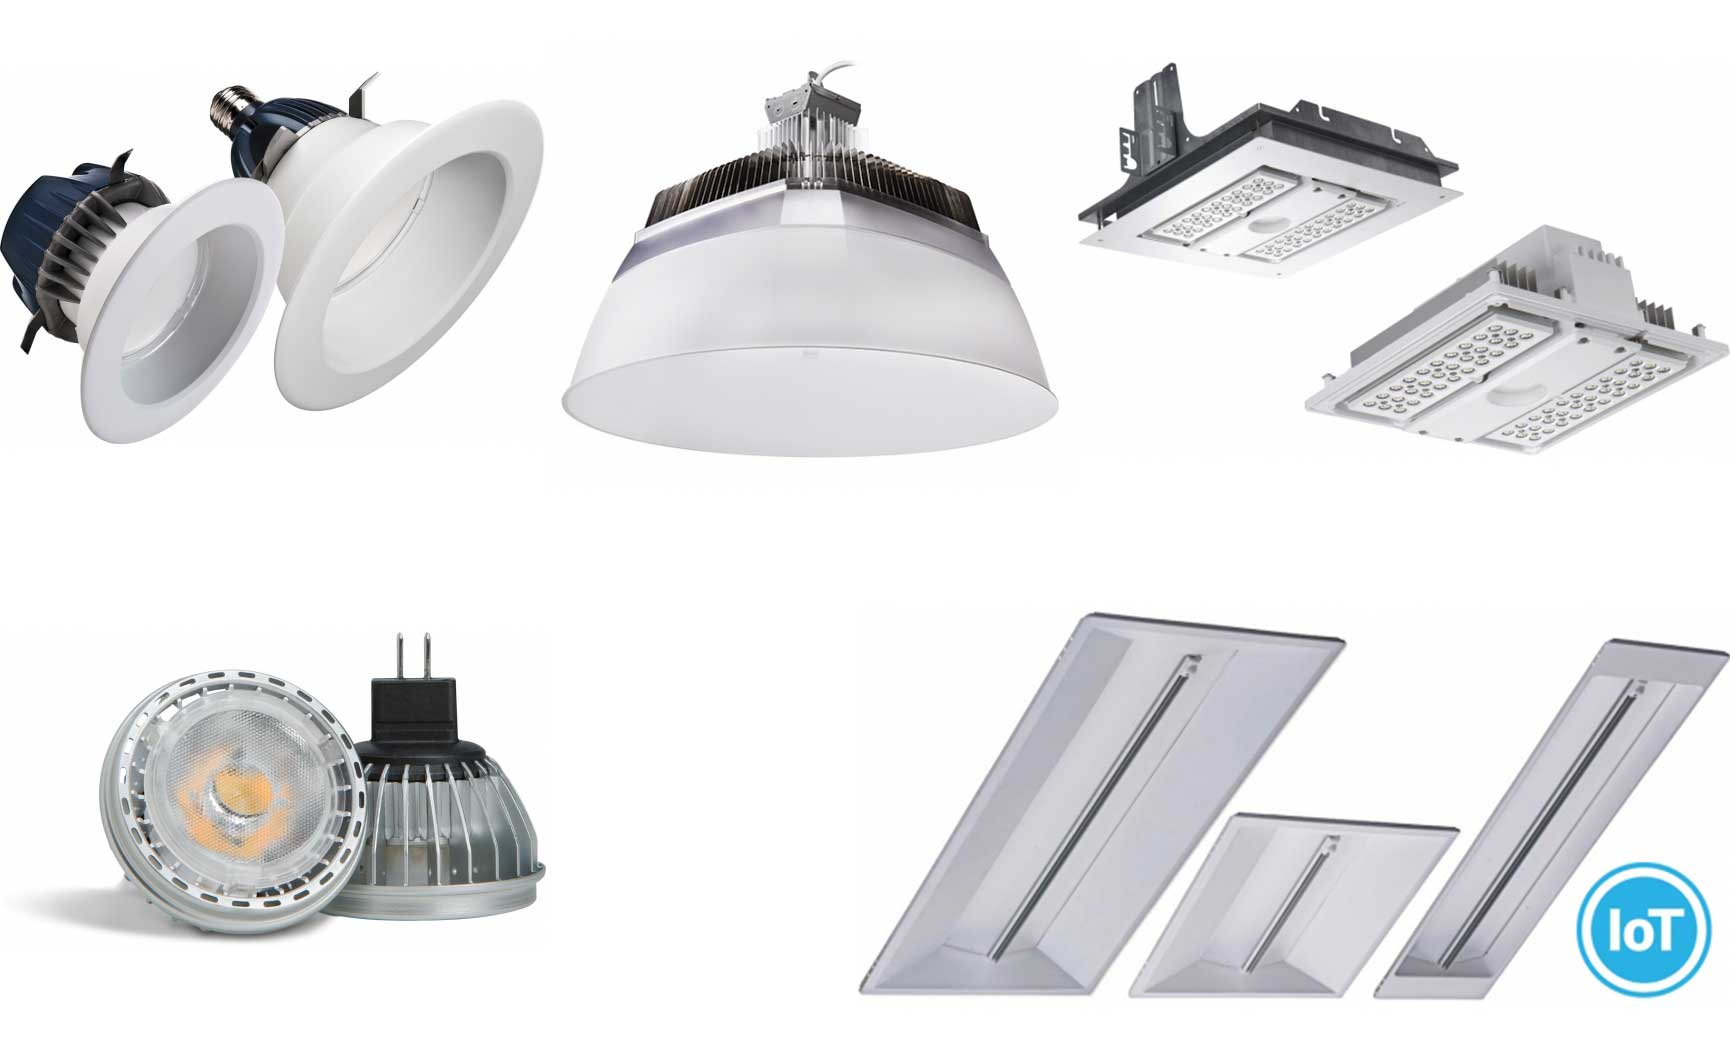 commercial led lighting can enhance your image and increase health